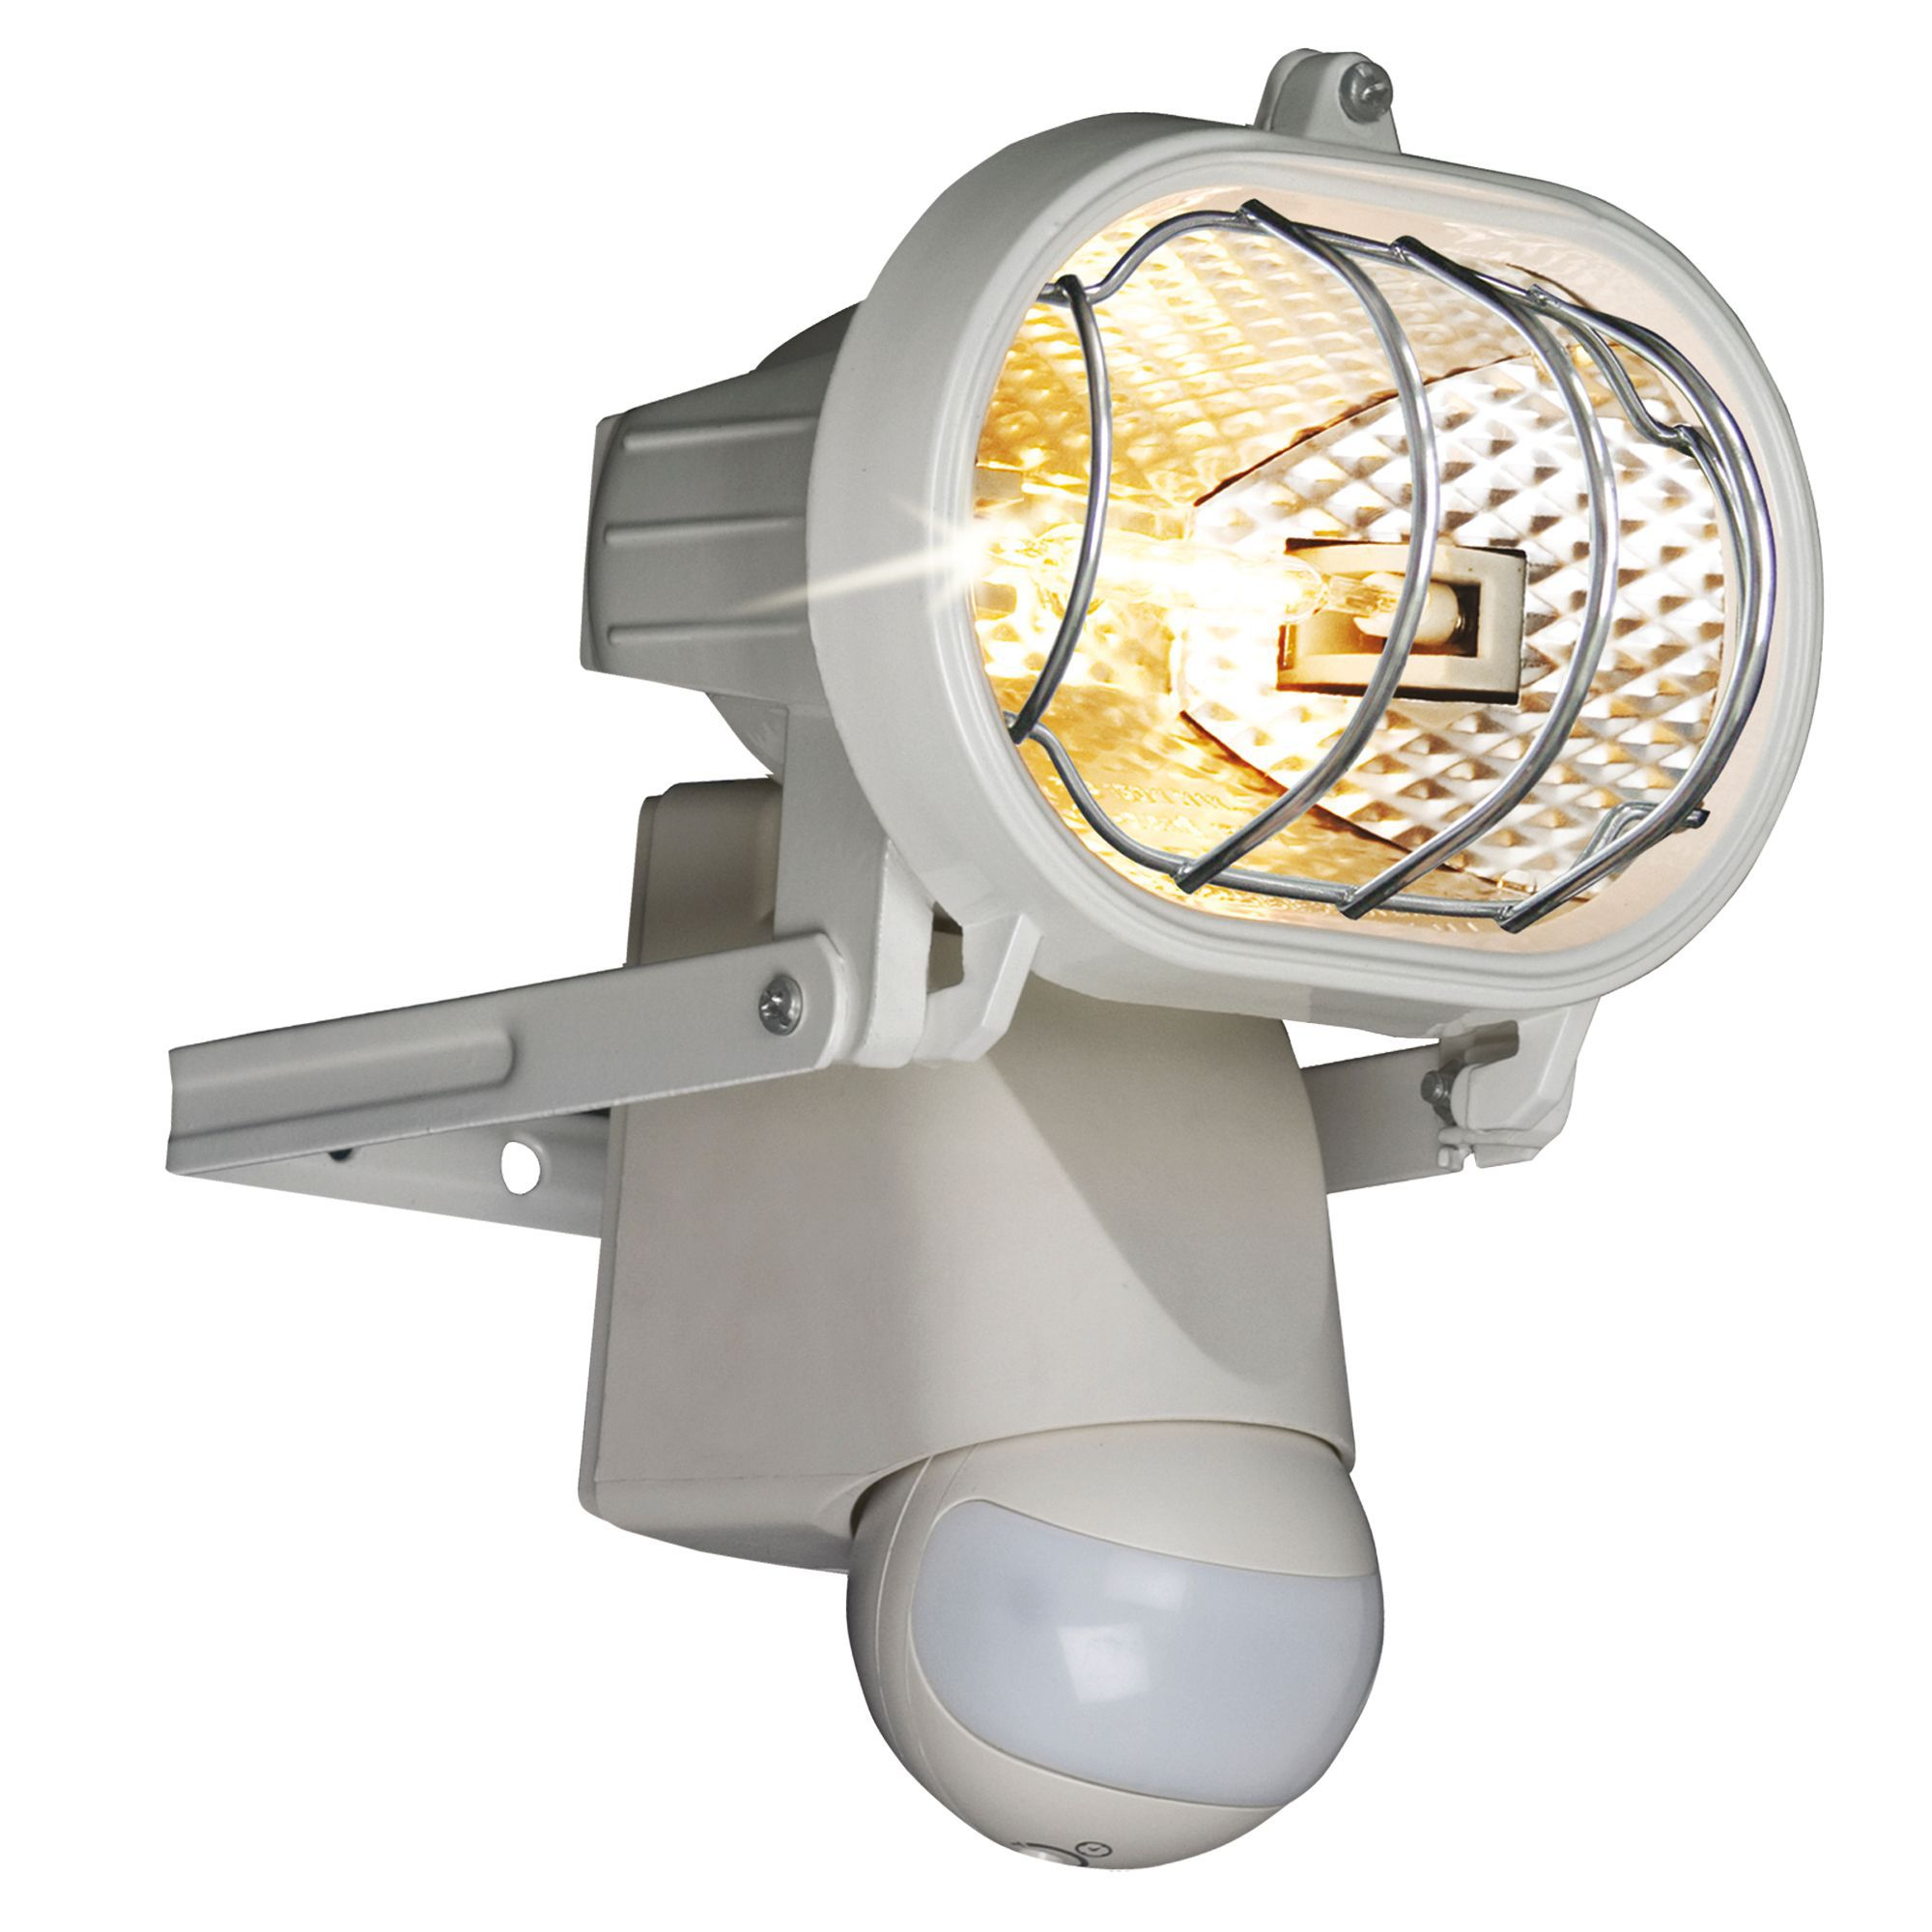 Outdoor Security Lights B Q: B&Q Polaris White 150W Mains Powered External PIR Security